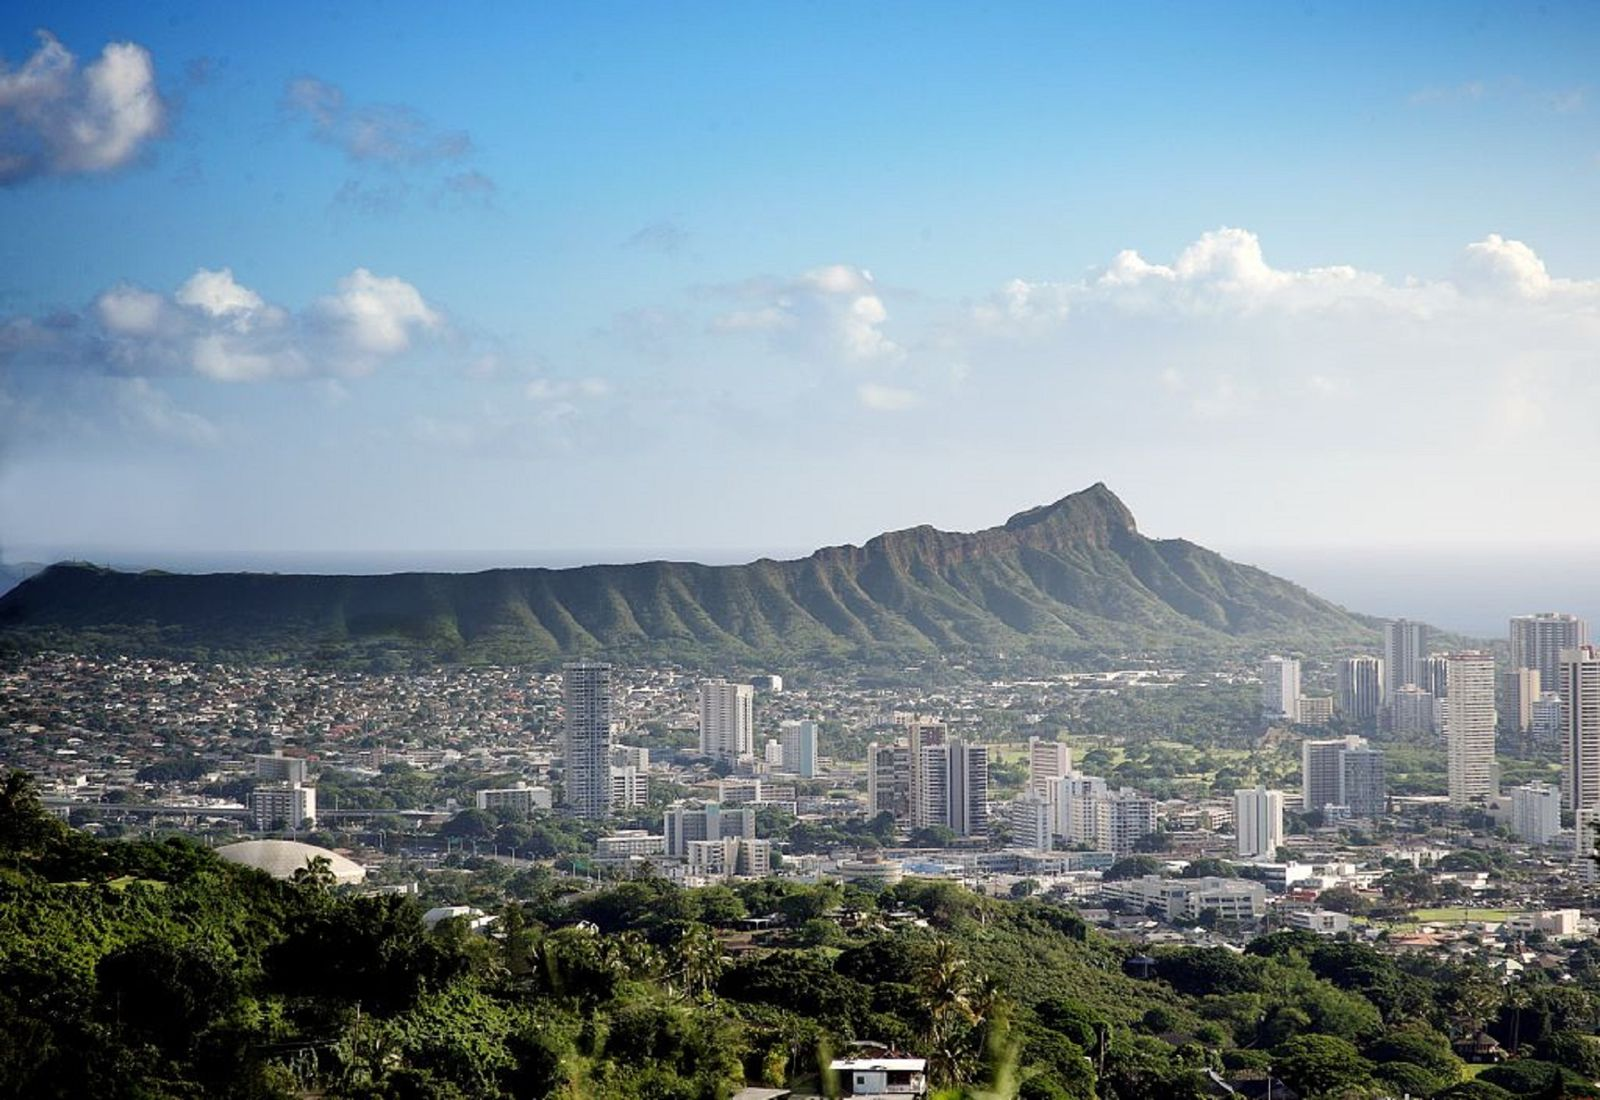 11 things to see and do when visiting honolulu hawaii for the first